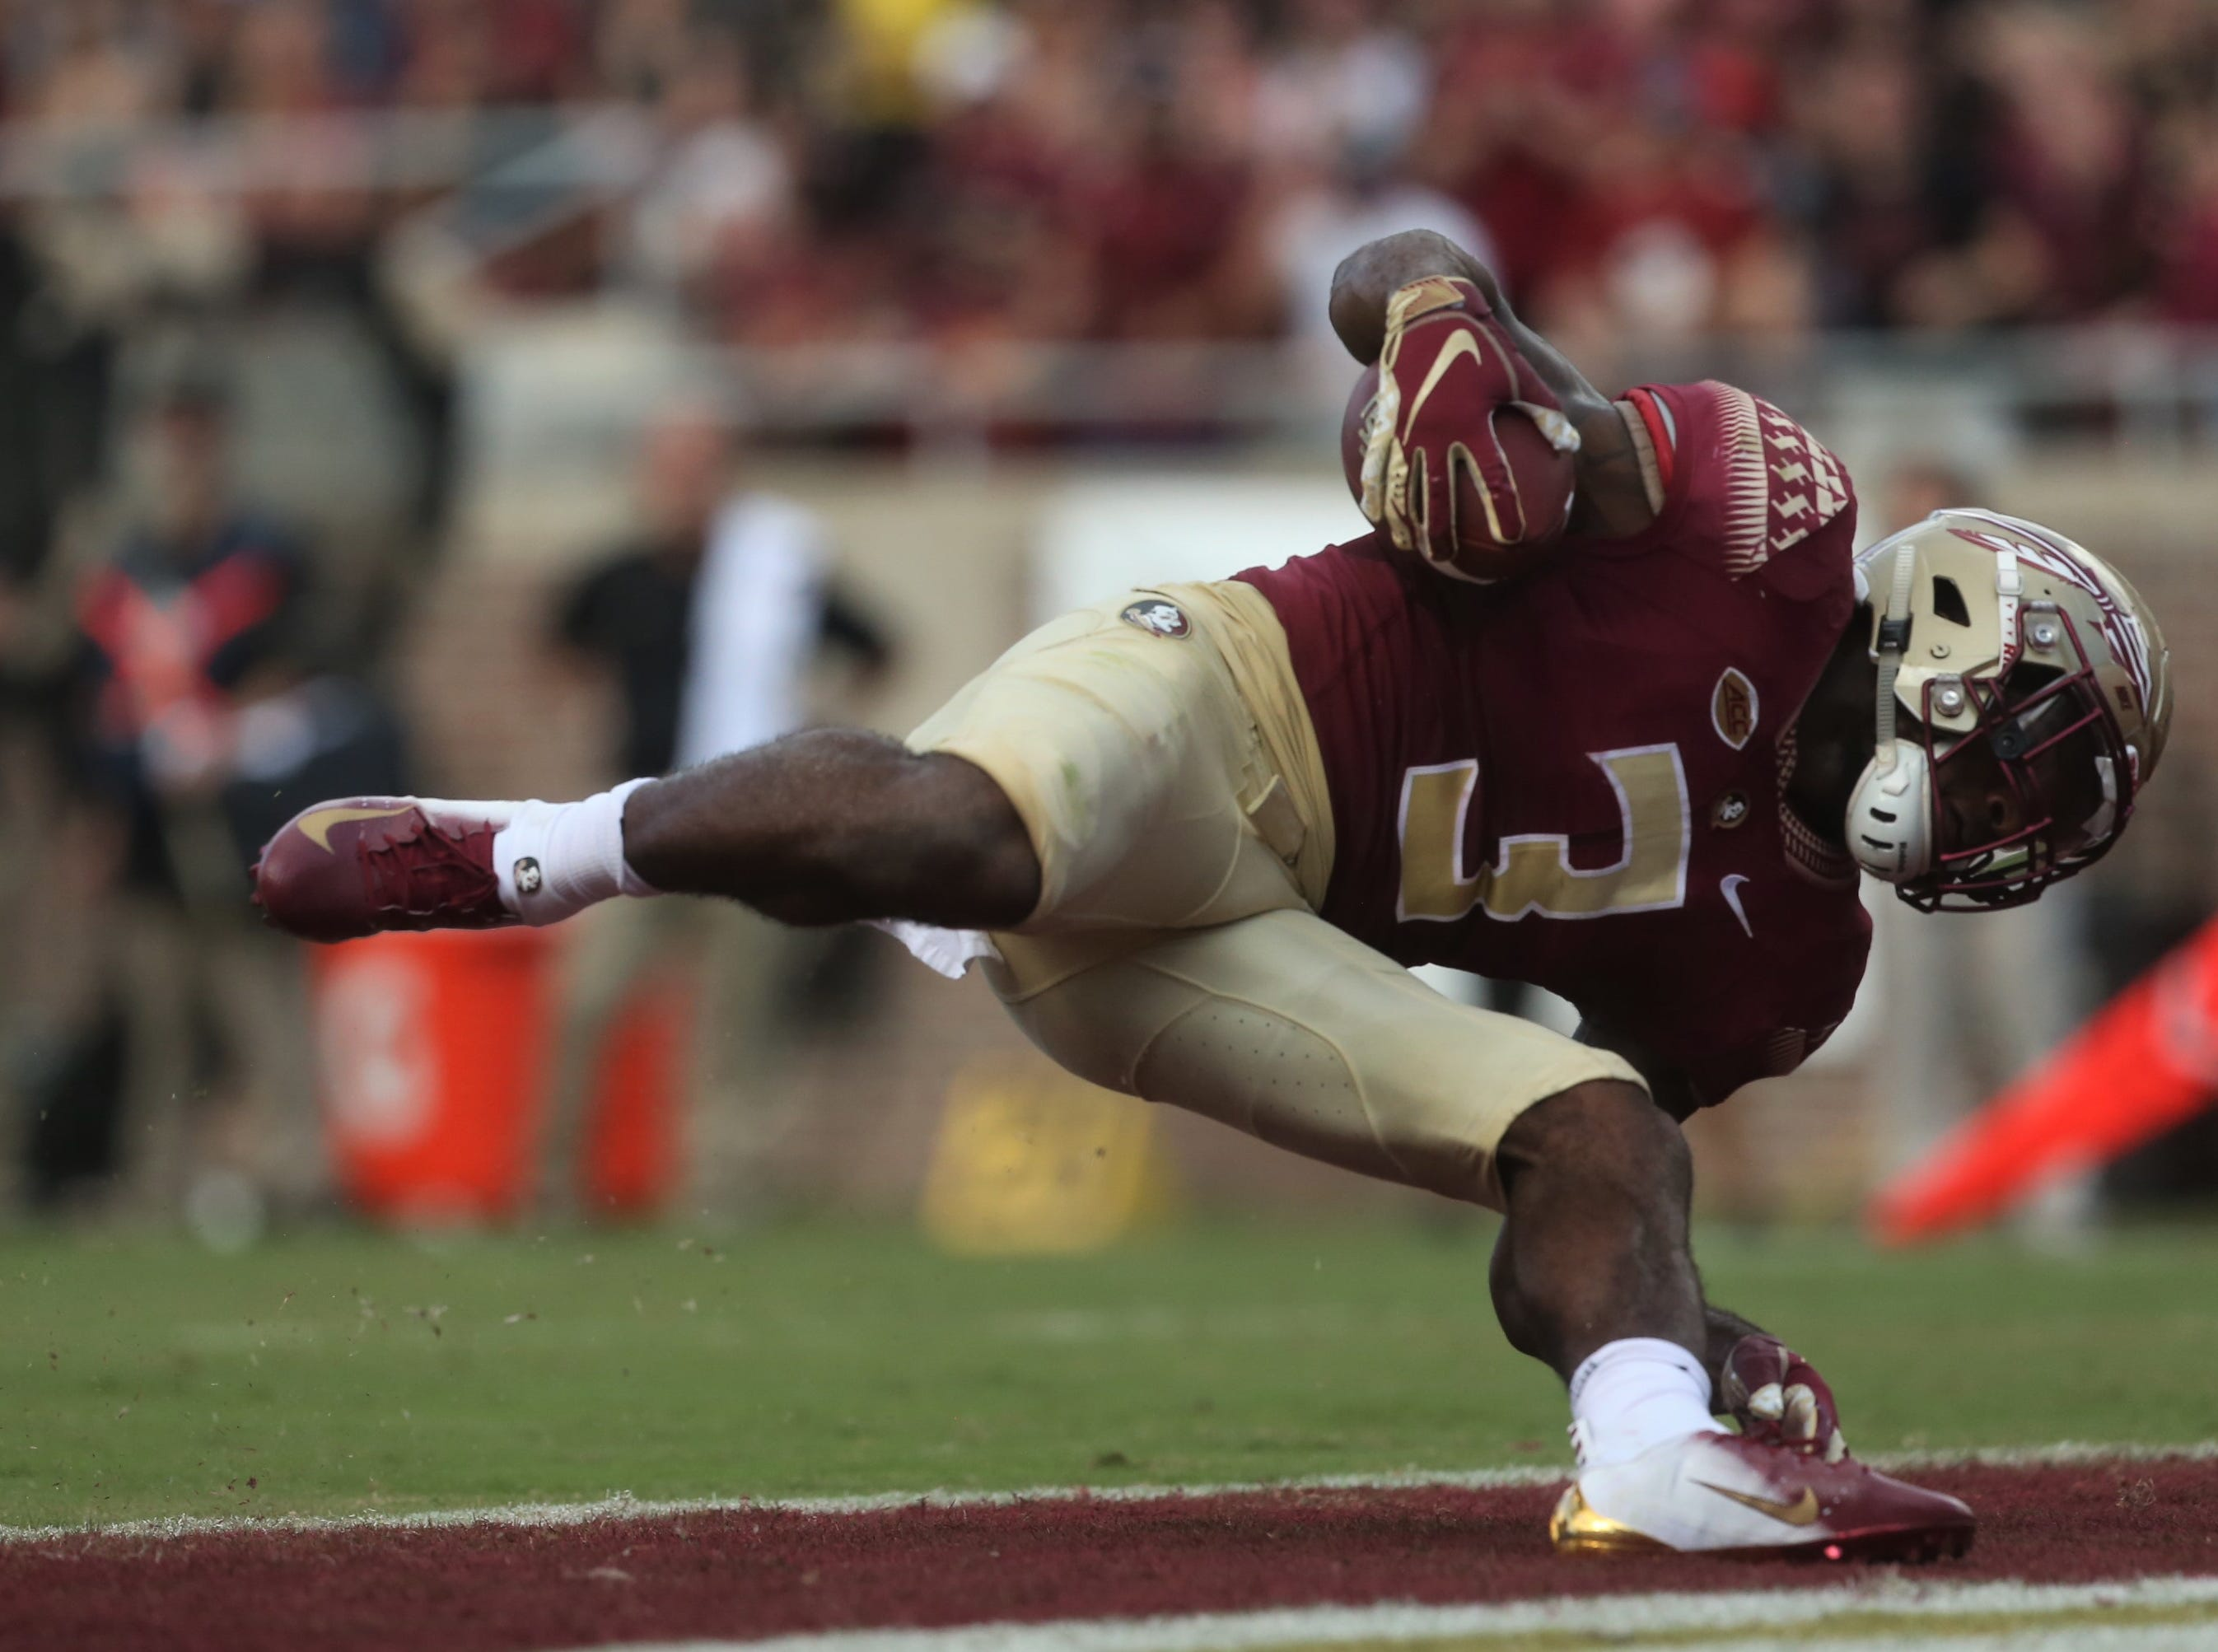 Florida State running back Cam Akers tries to keep his balance while falling into the end zone for a touchdown during a game against Wake Forest at Doak Campbell Stadium on Oct. 20, 2018.